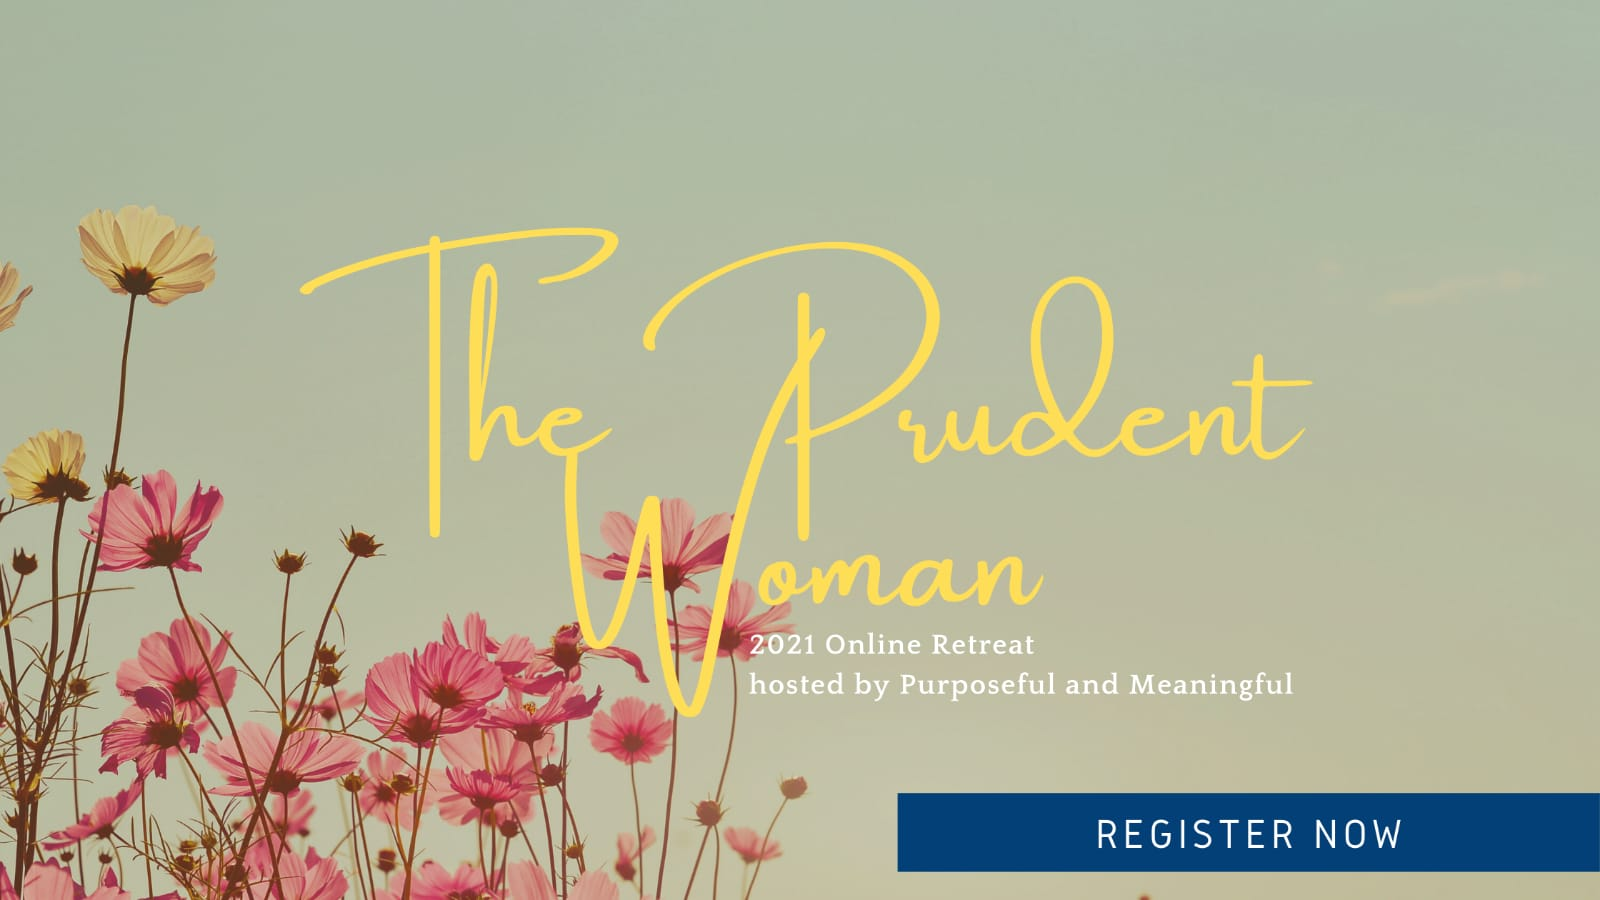 Register for the Prudent Woman Retreat